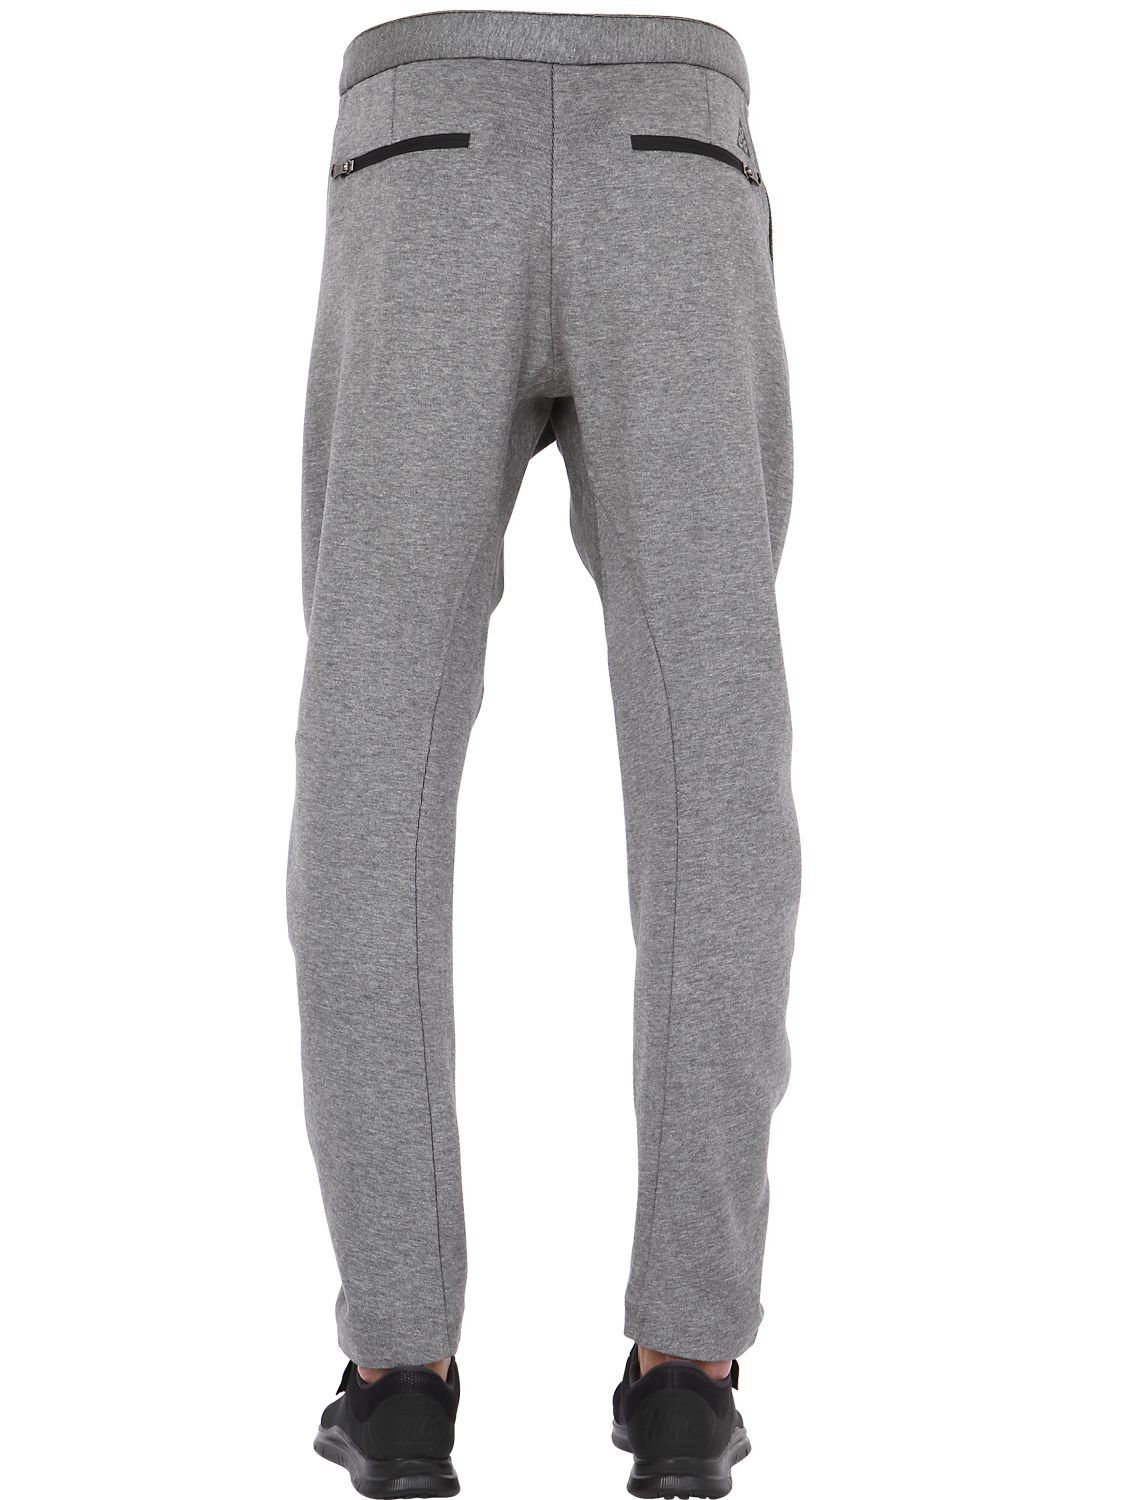 4a2ade89e0d3 Lyst - Nike Acg Tech Fleece Pants in Gray for Men